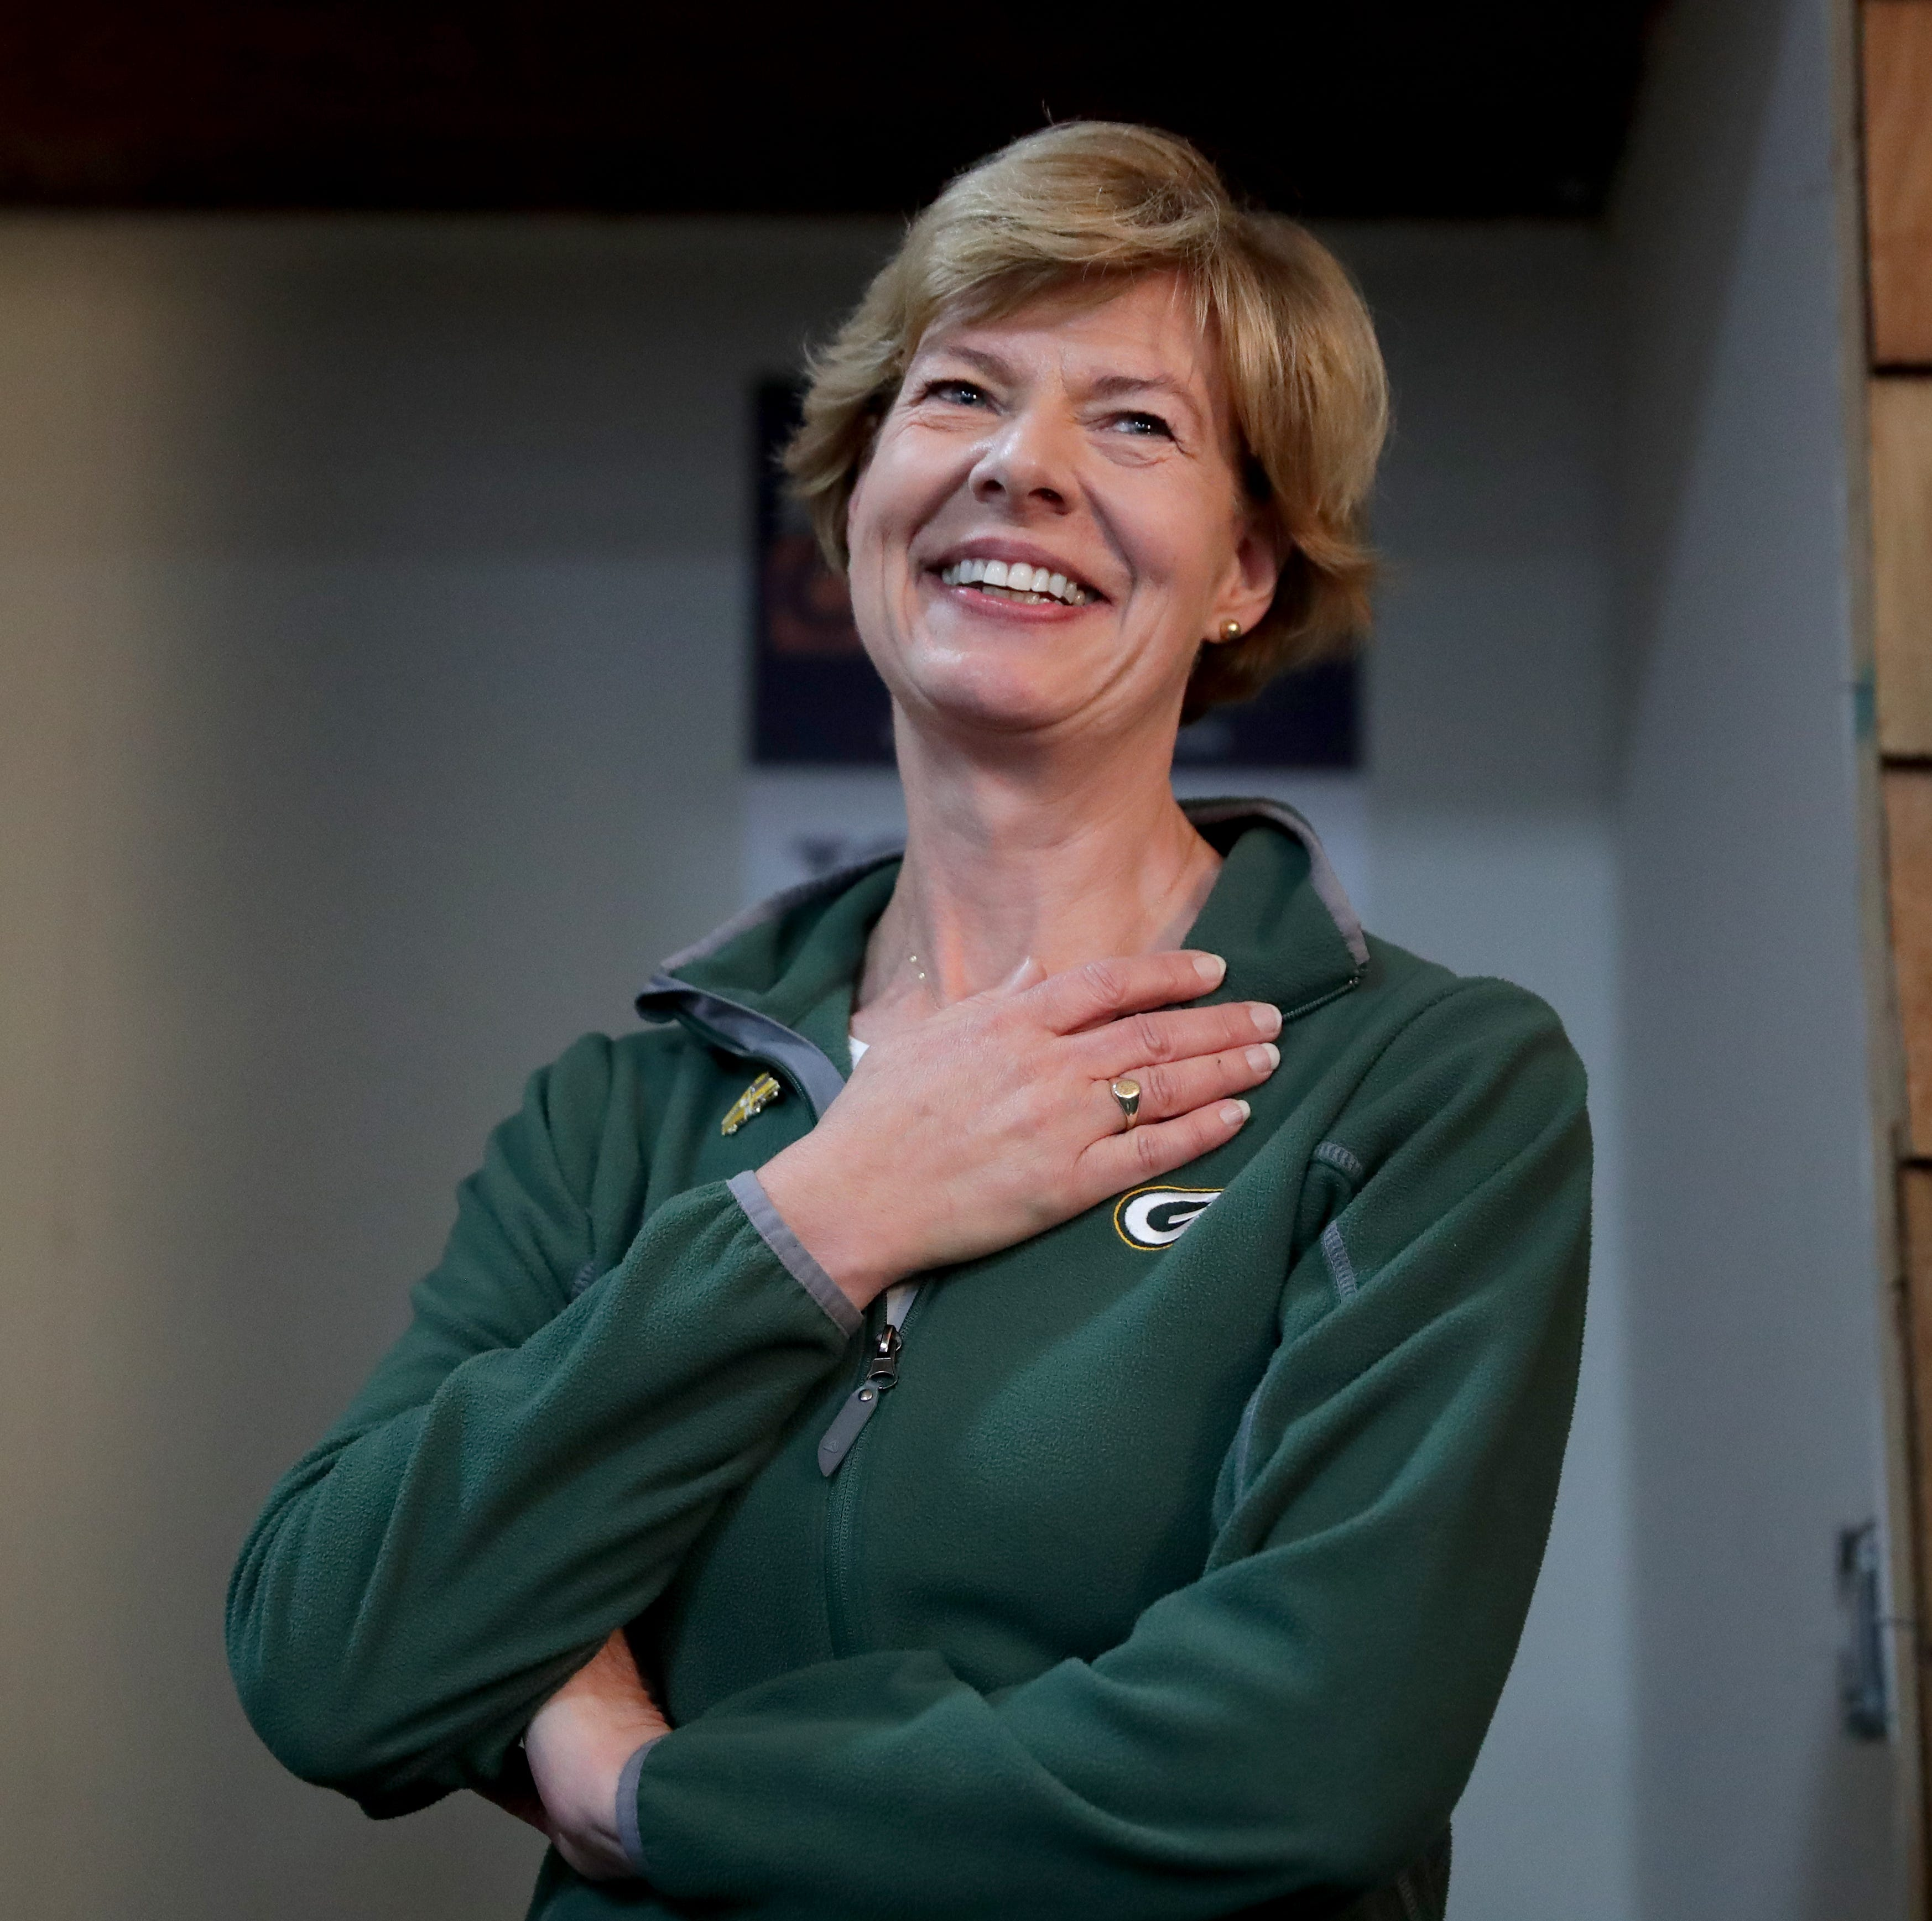 Tammy Baldwin's win - the largest in a top race in Wisconsin in 12 years - offers road map for 2020